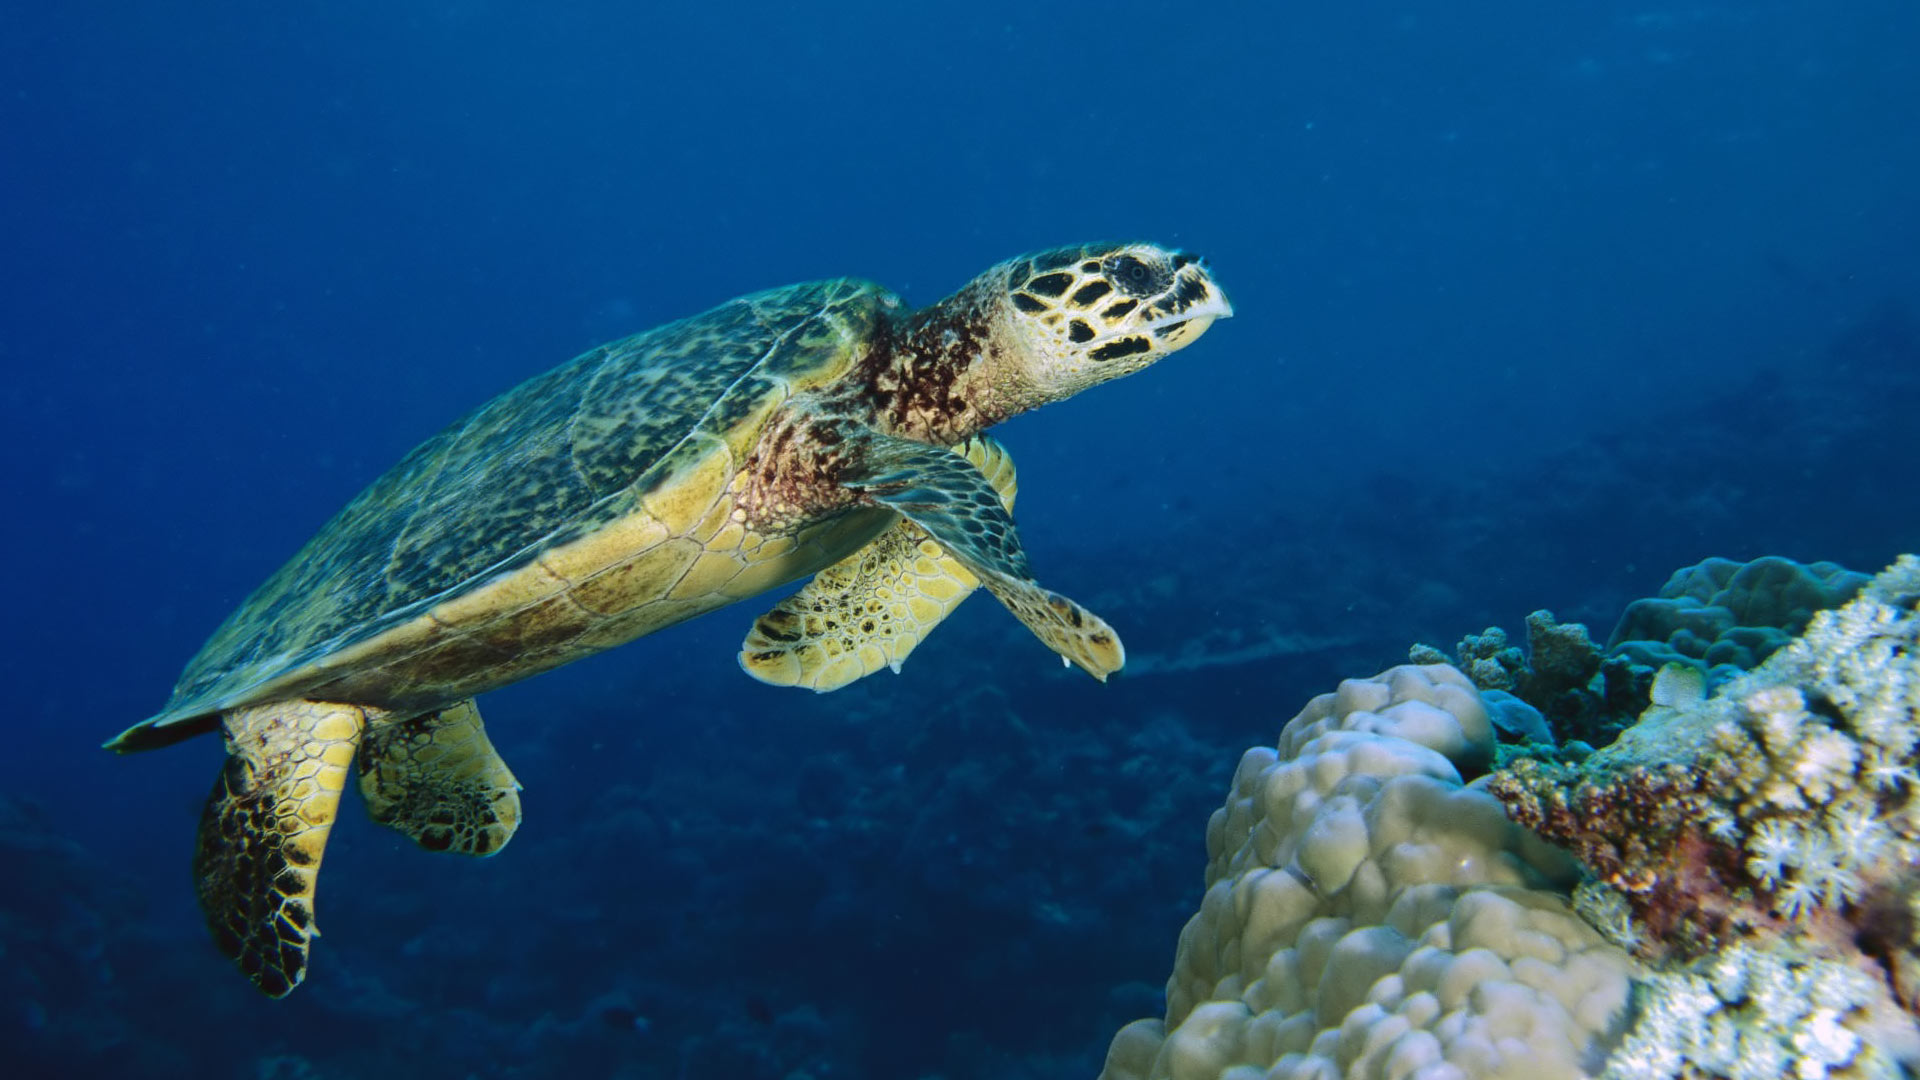 Underwater Sea Turtle 1920x1080 HD Image Animals Marine 1920x1080